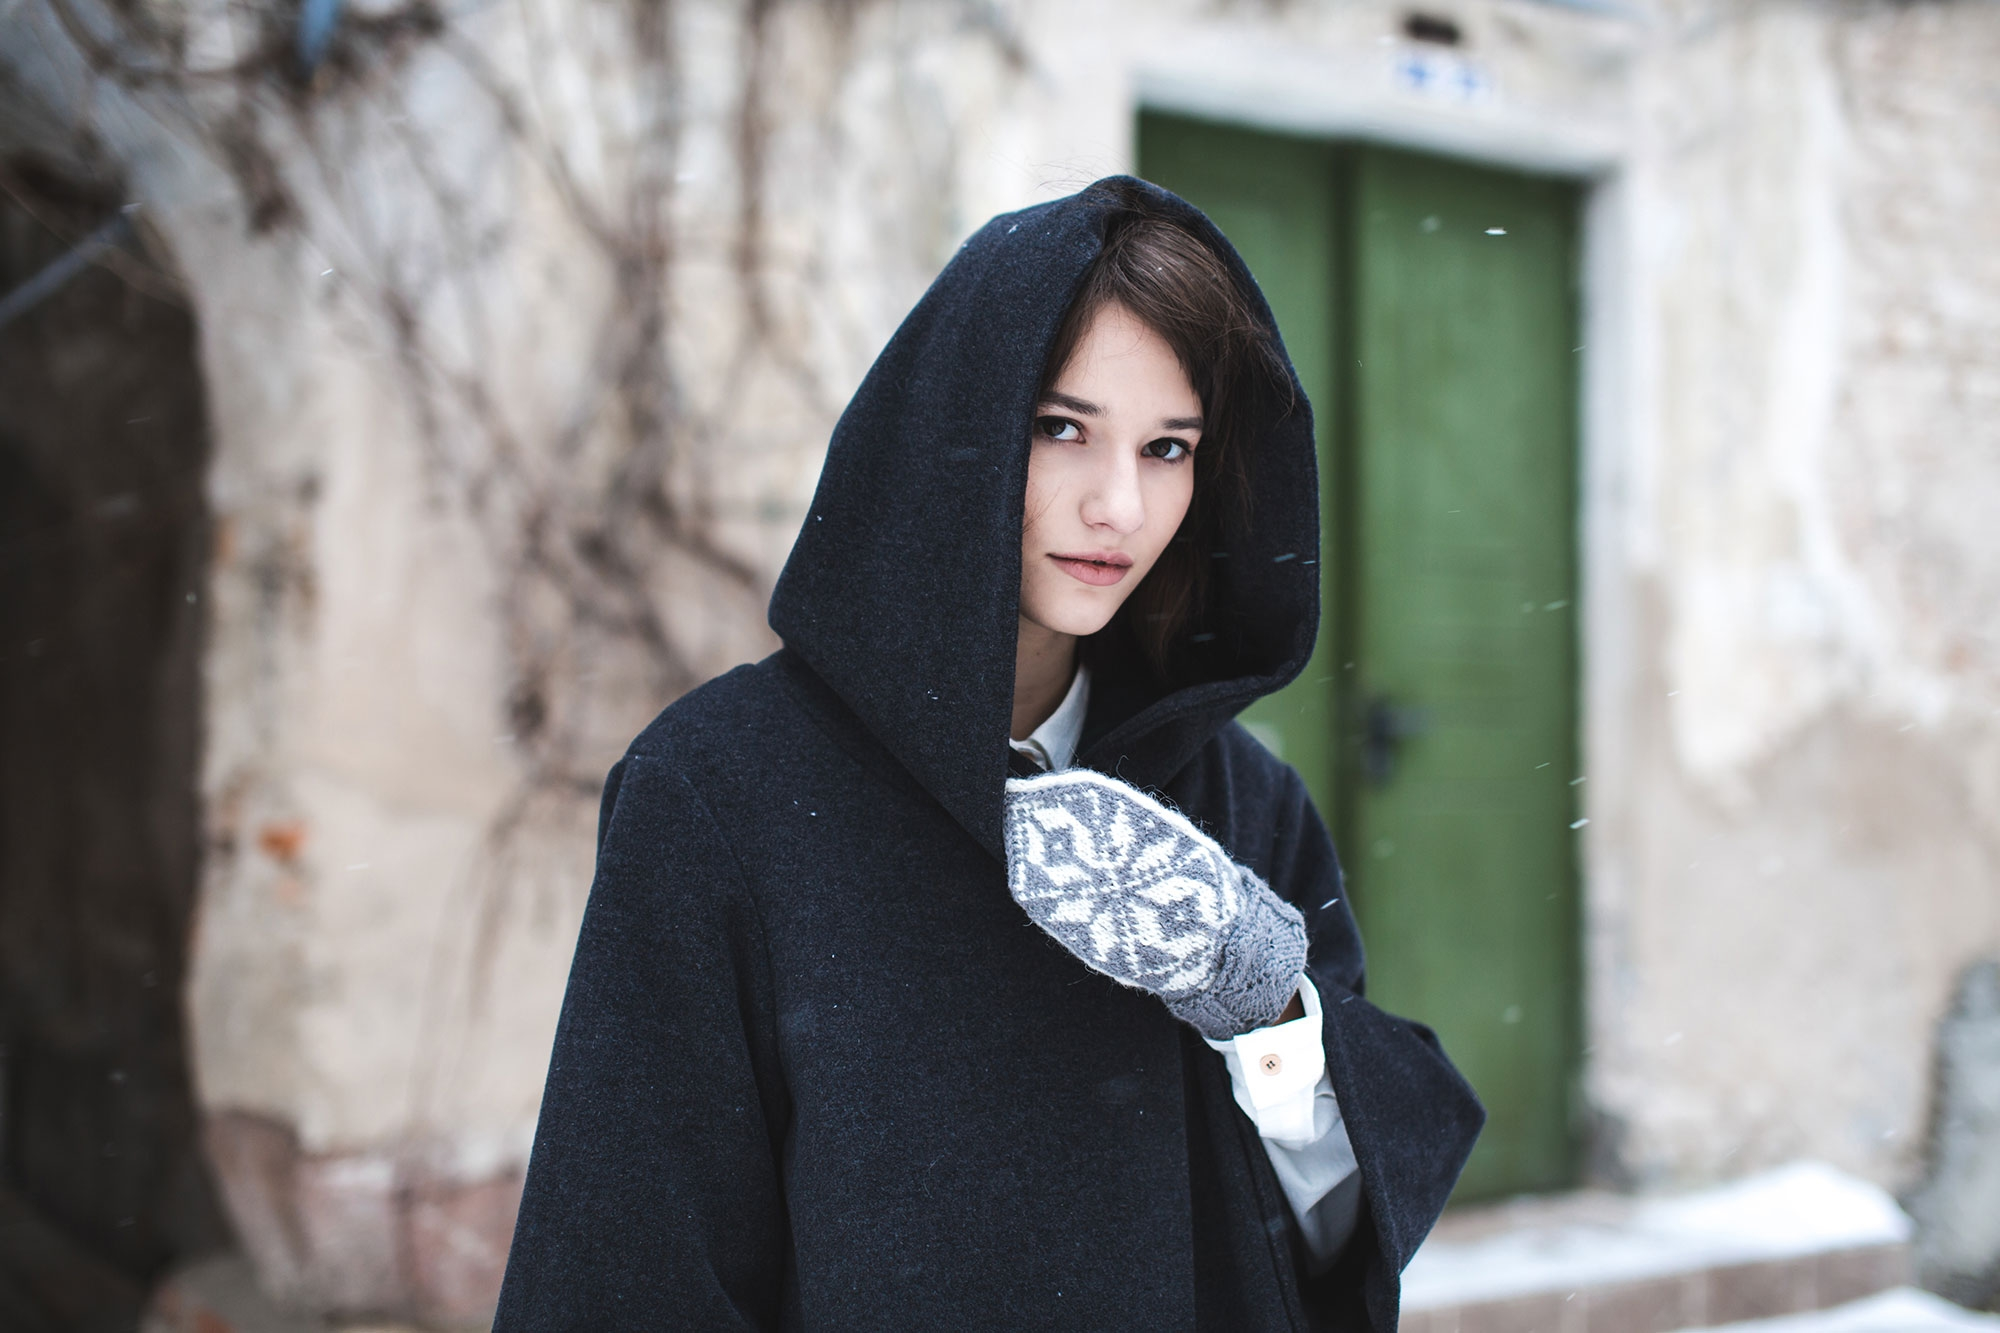 Voriagh-winter-snow-manteau-noir-evase